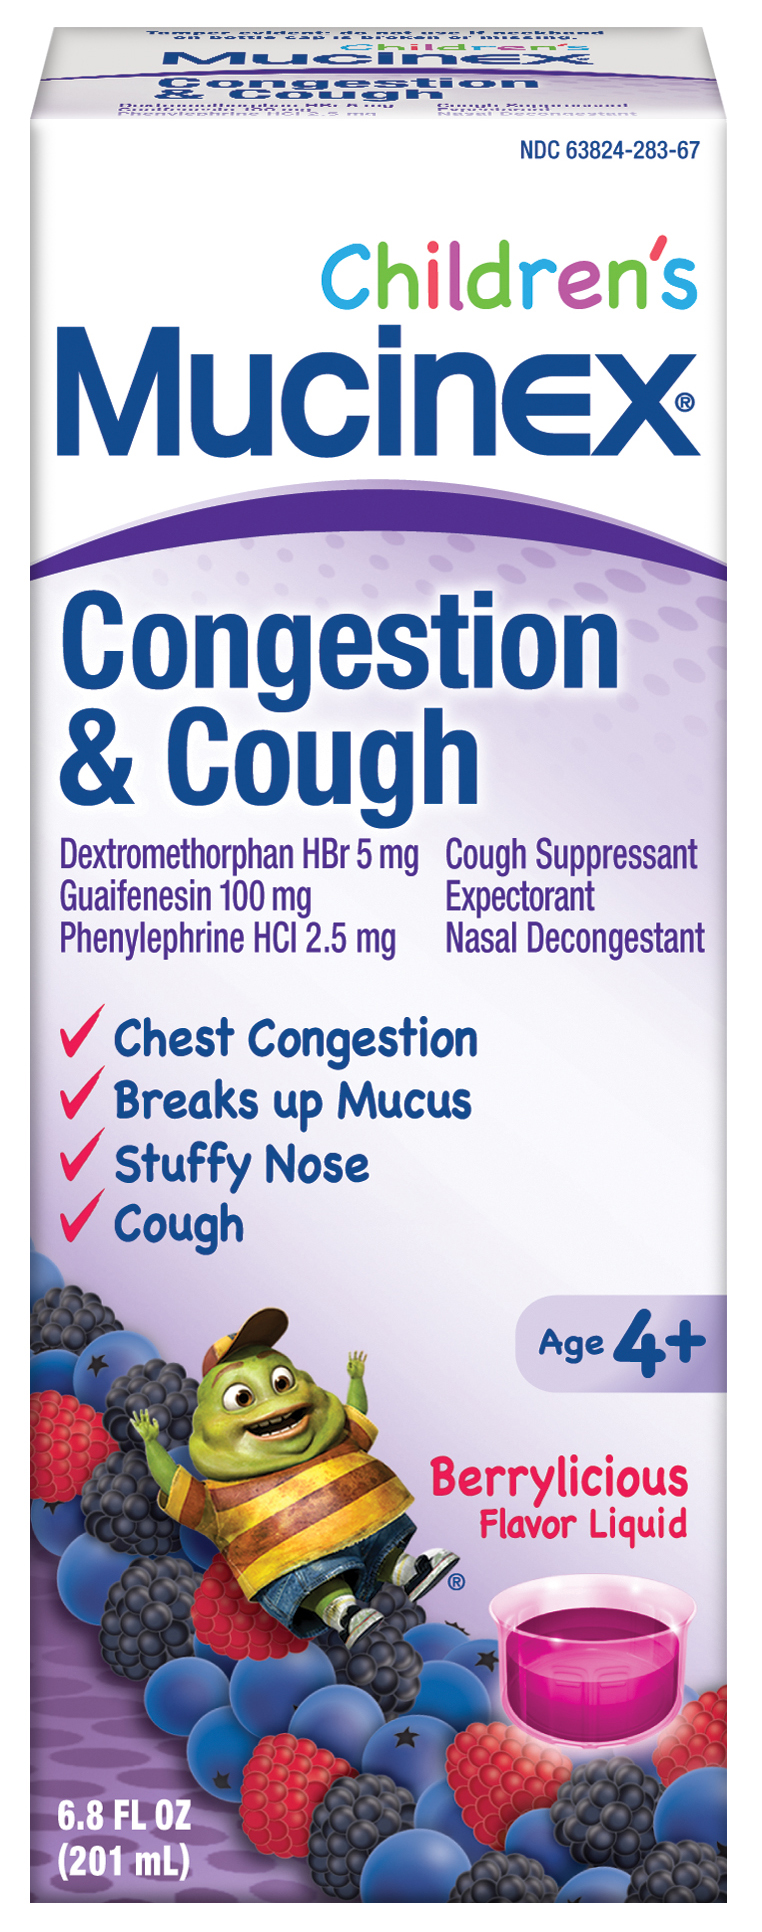 MUCINEX CHILDRENS Congestion  Cough  Berrylicious Photo